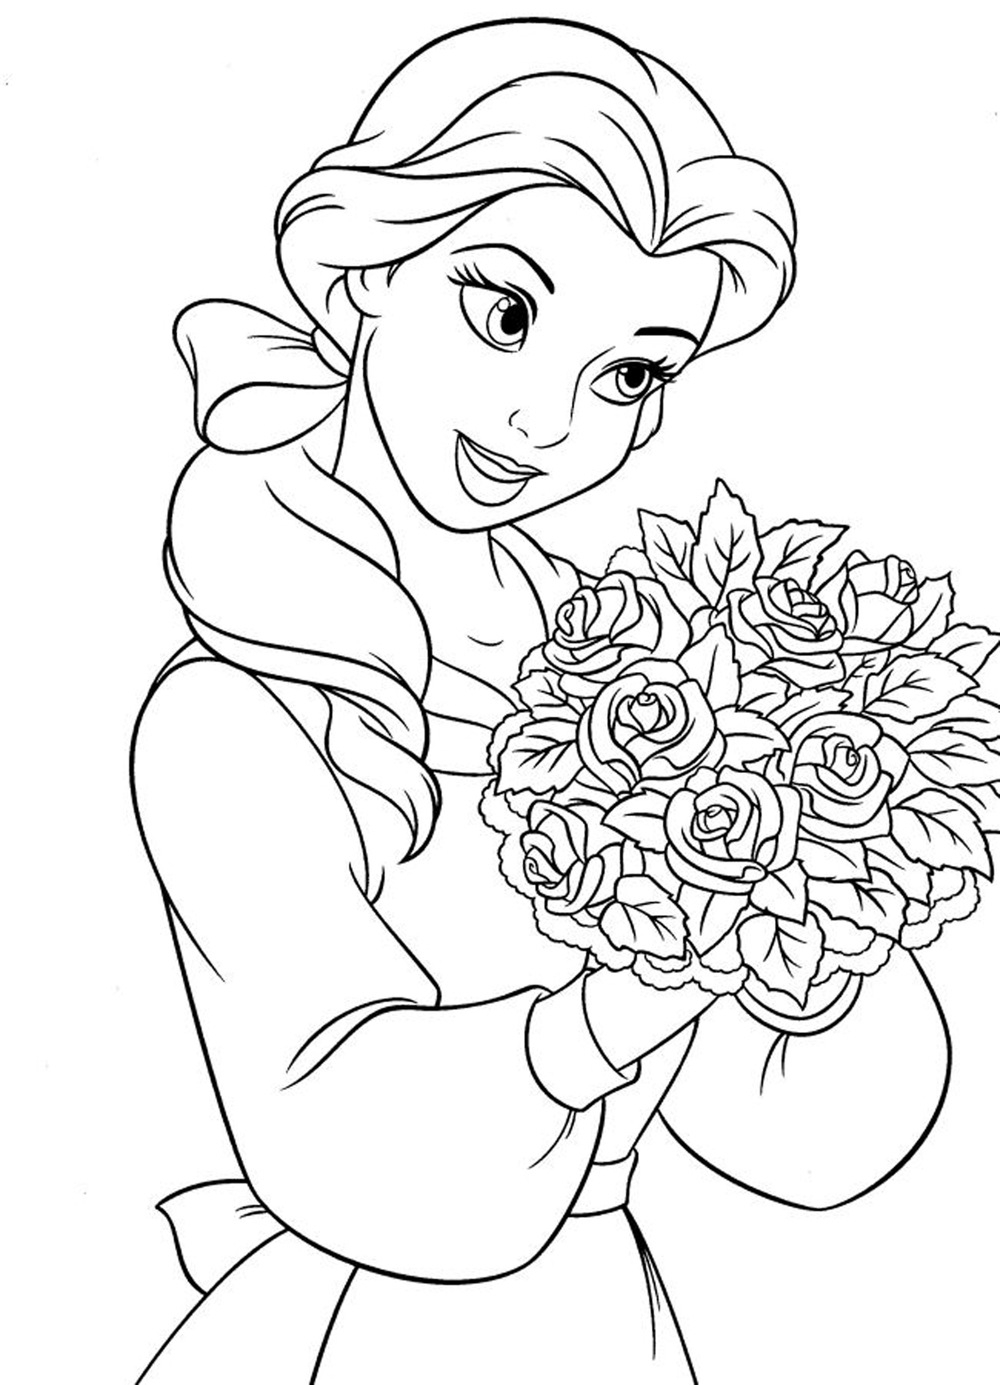 disney coloring book pages - disney princess coloring pages